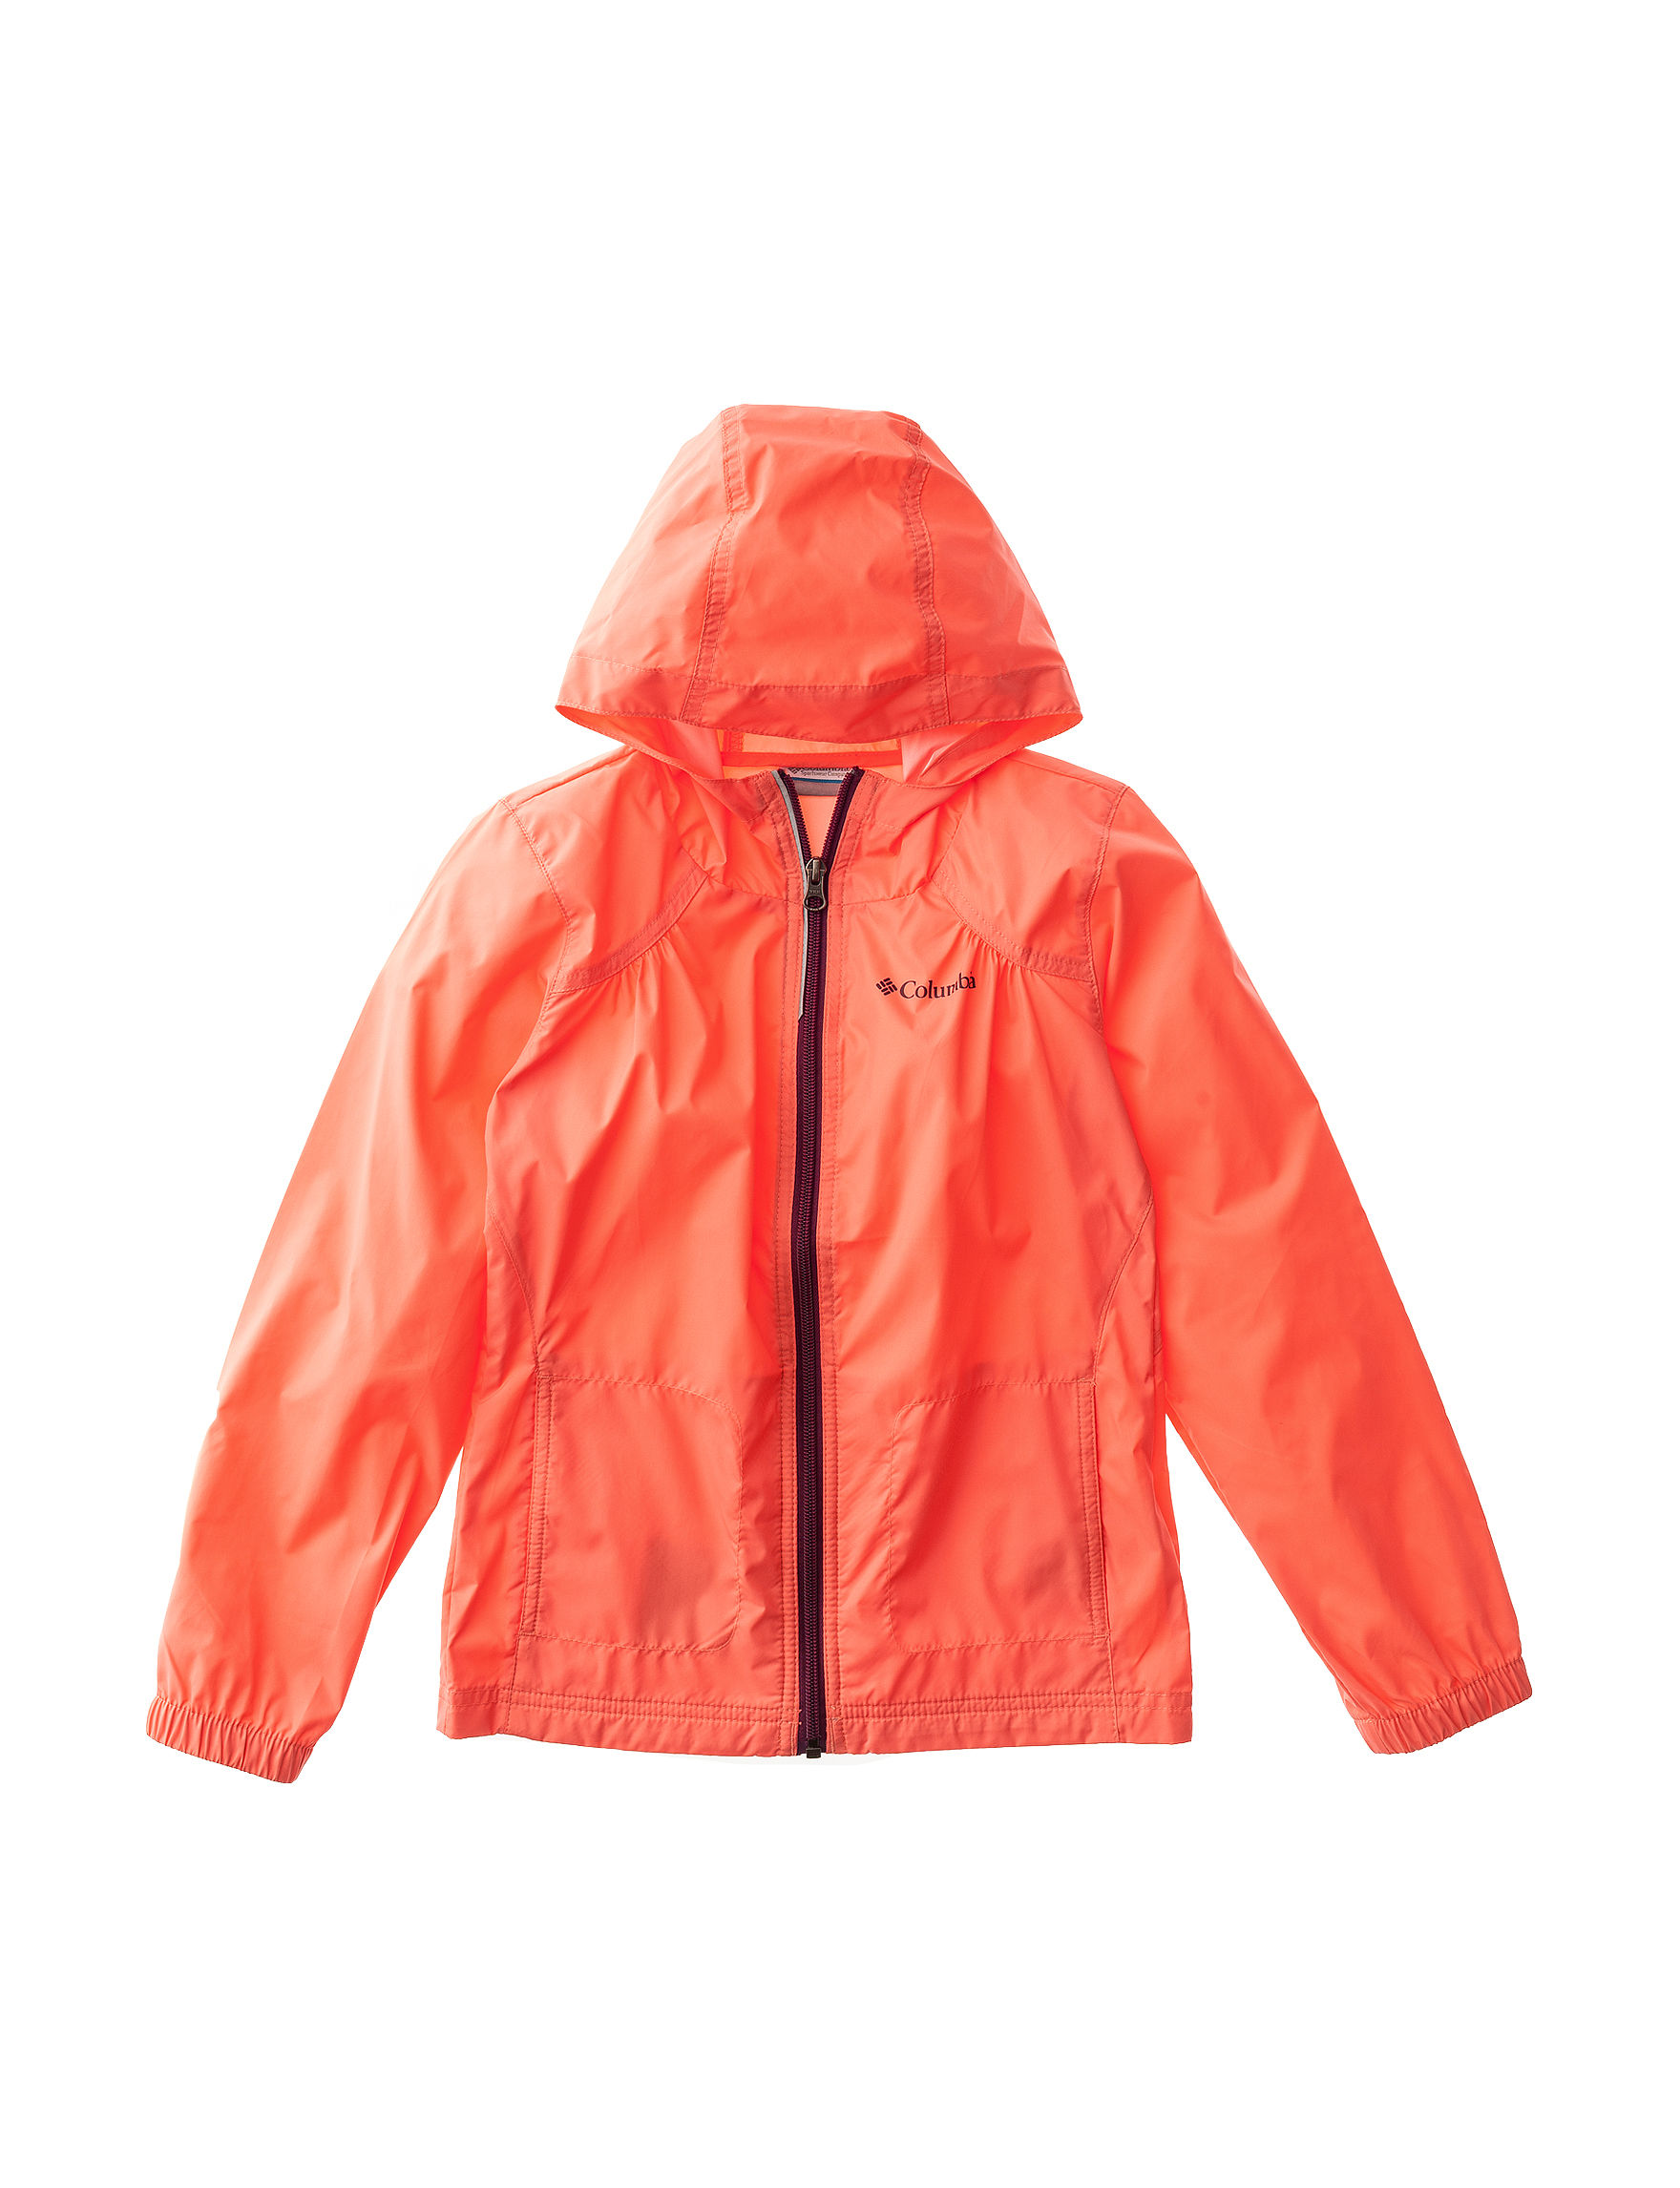 Columbia Coral Lightweight Jackets & Blazers